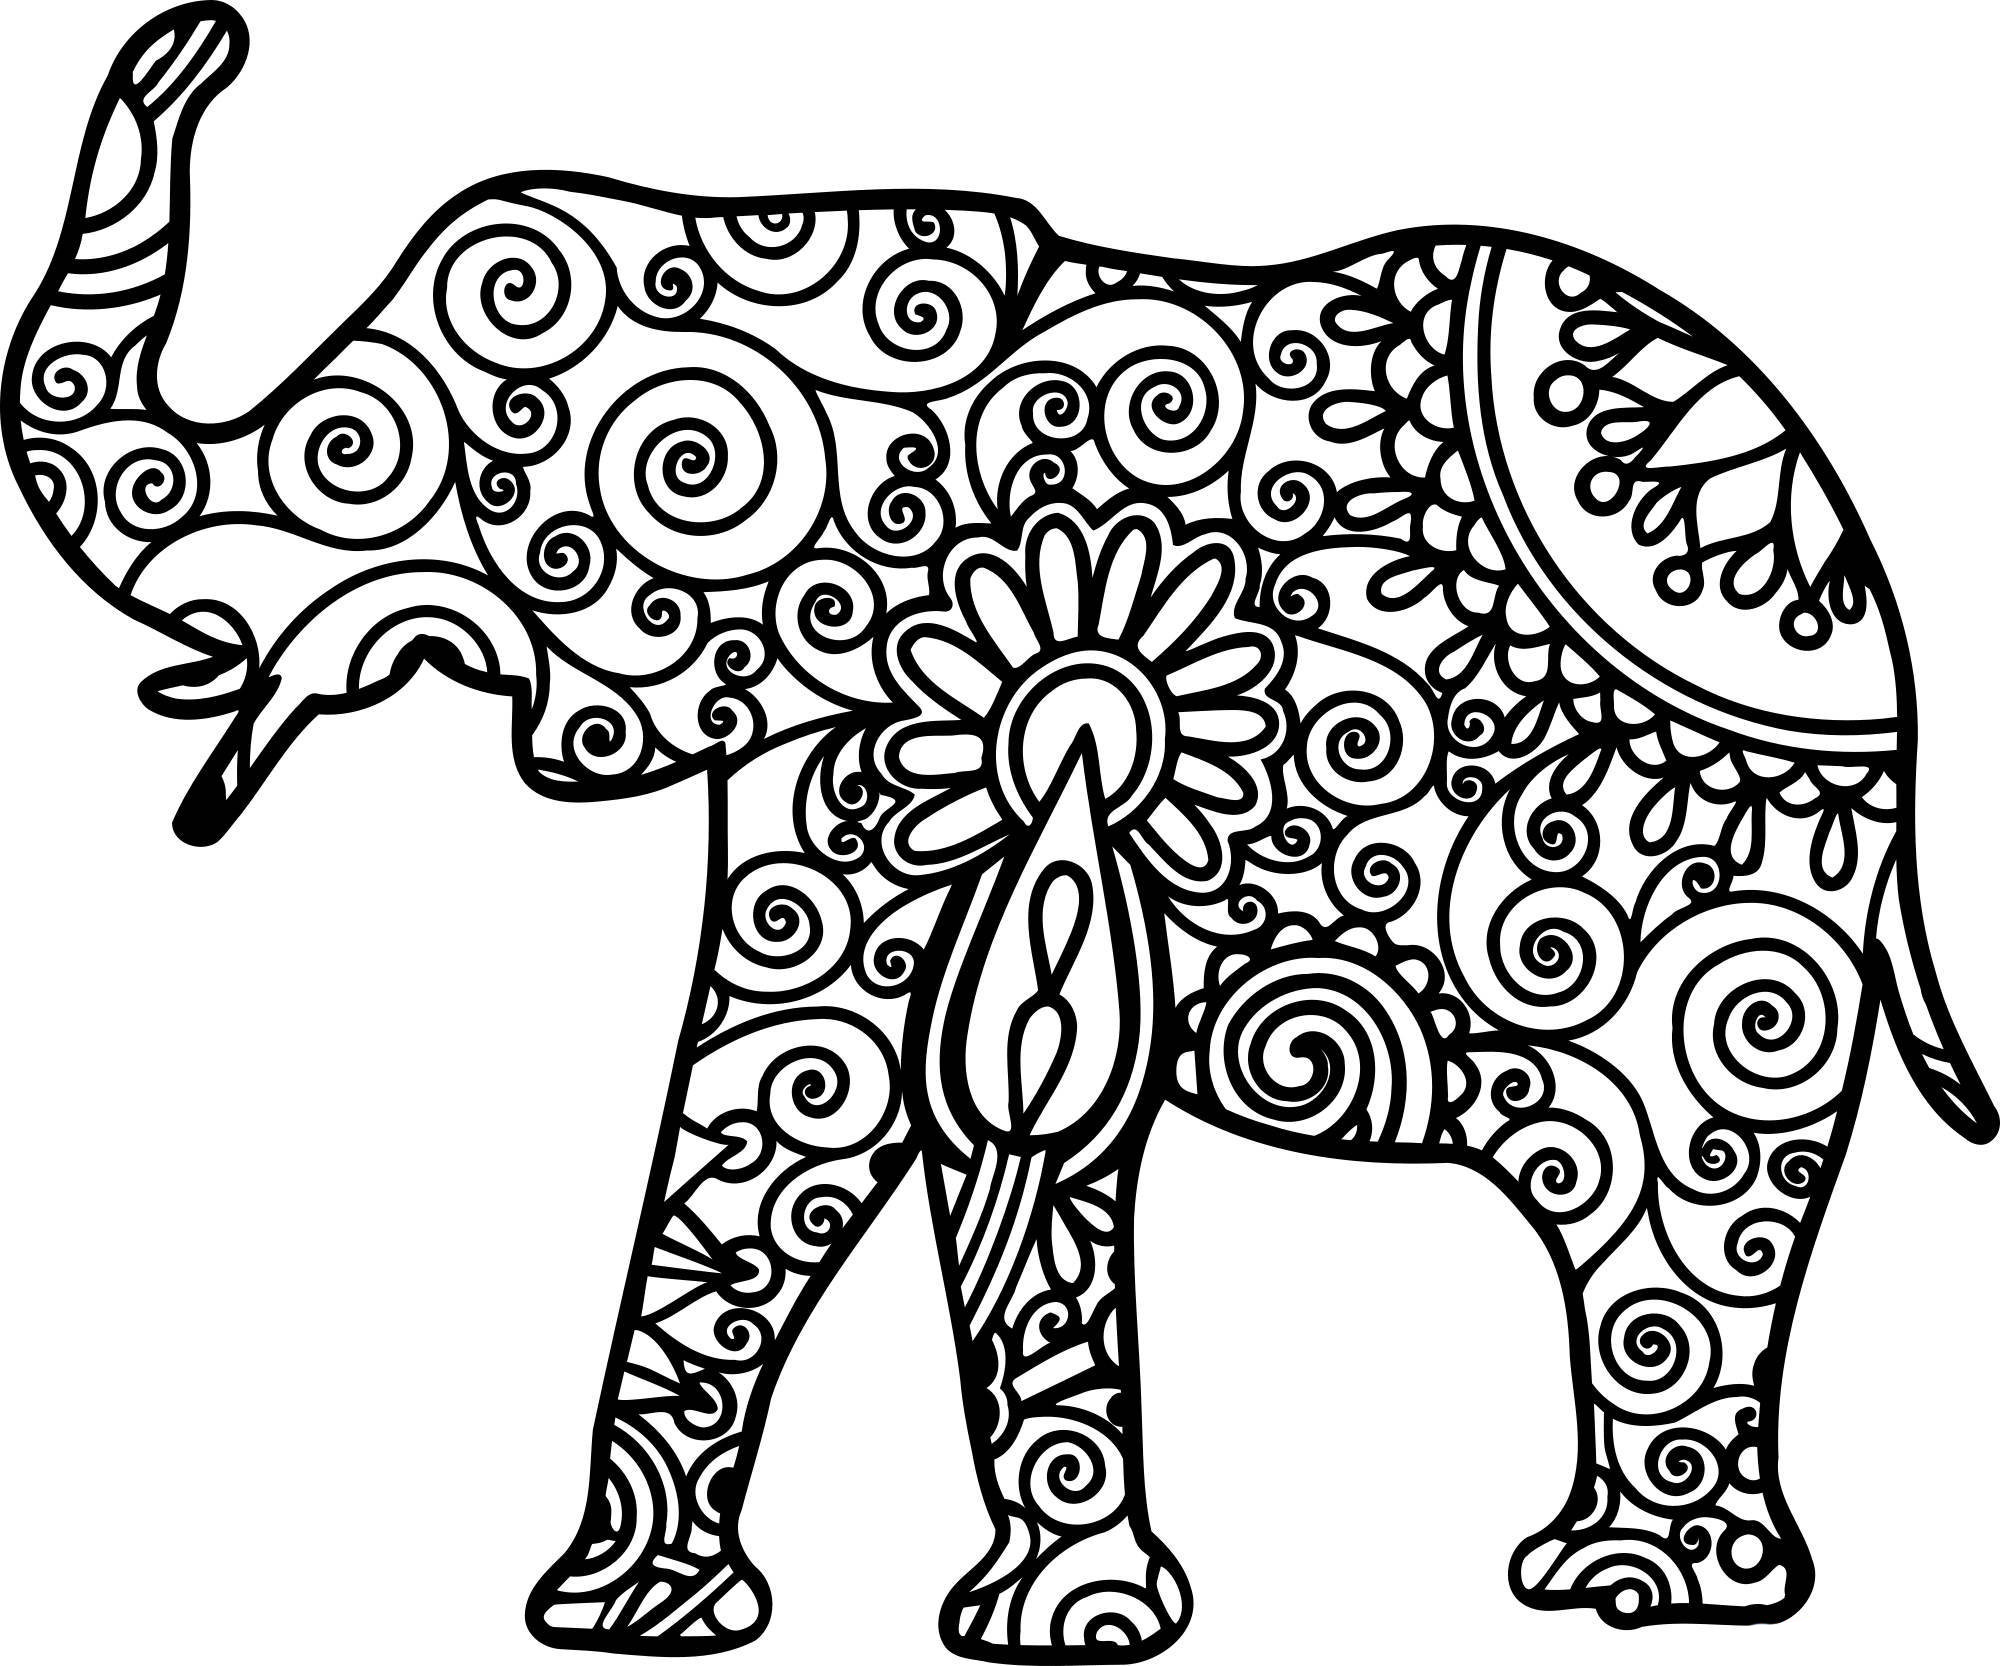 free coloring pages with designs butterfly coloring pages for adults best coloring pages pages coloring with free designs